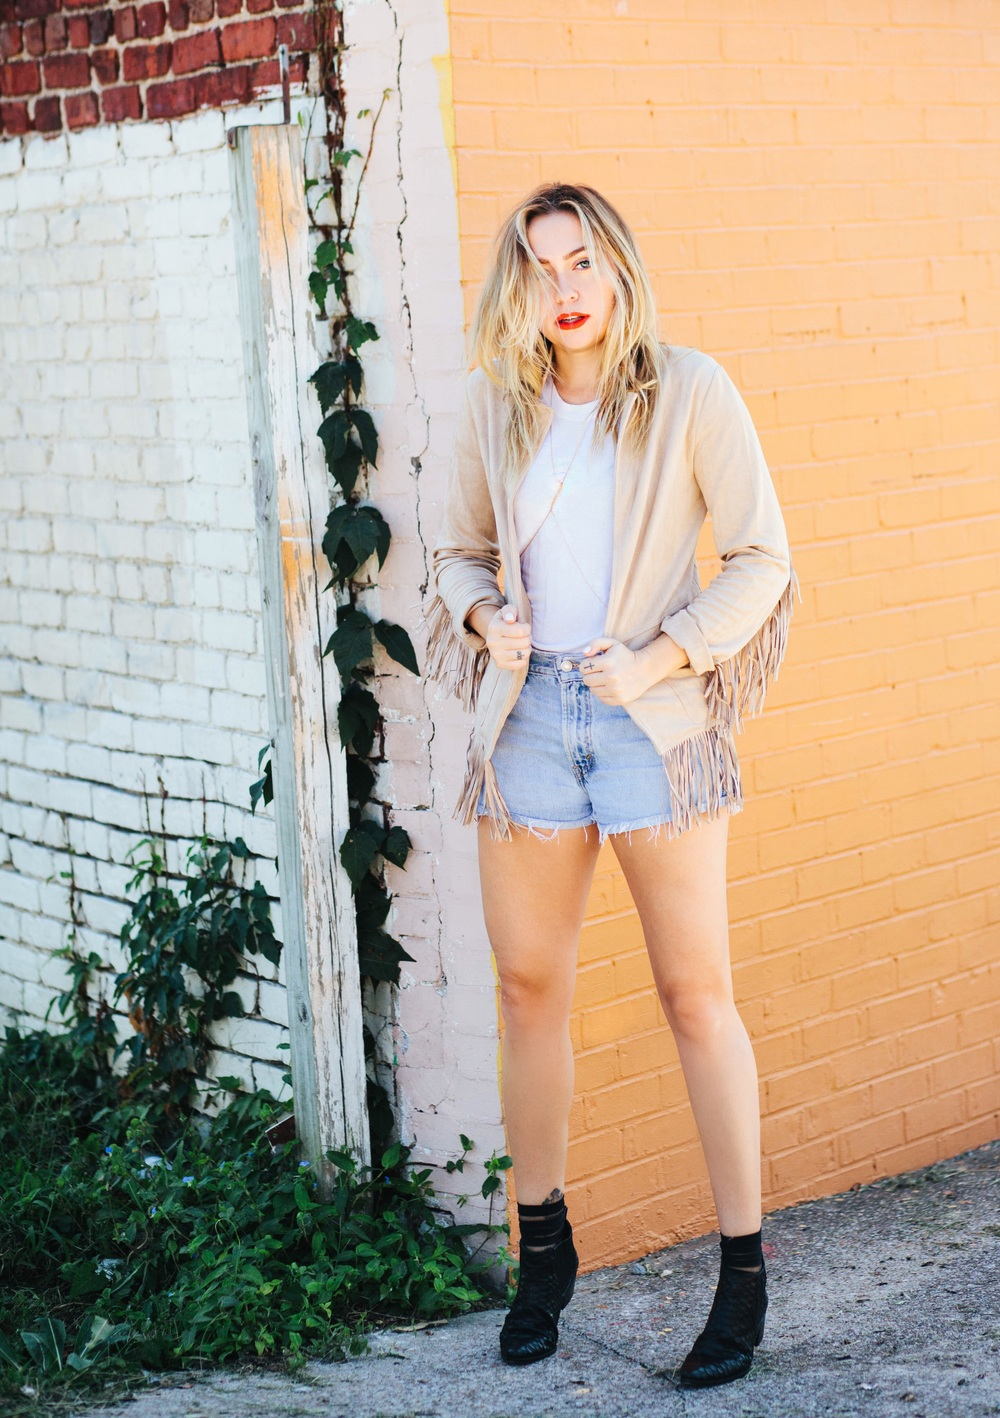 Jacket - Glamorous UK | Shorts - Levi's | Boots - Modern Vice | Socks - Ozone | Body Chain - Ivi Jewelry || photos by Mandy Mooring